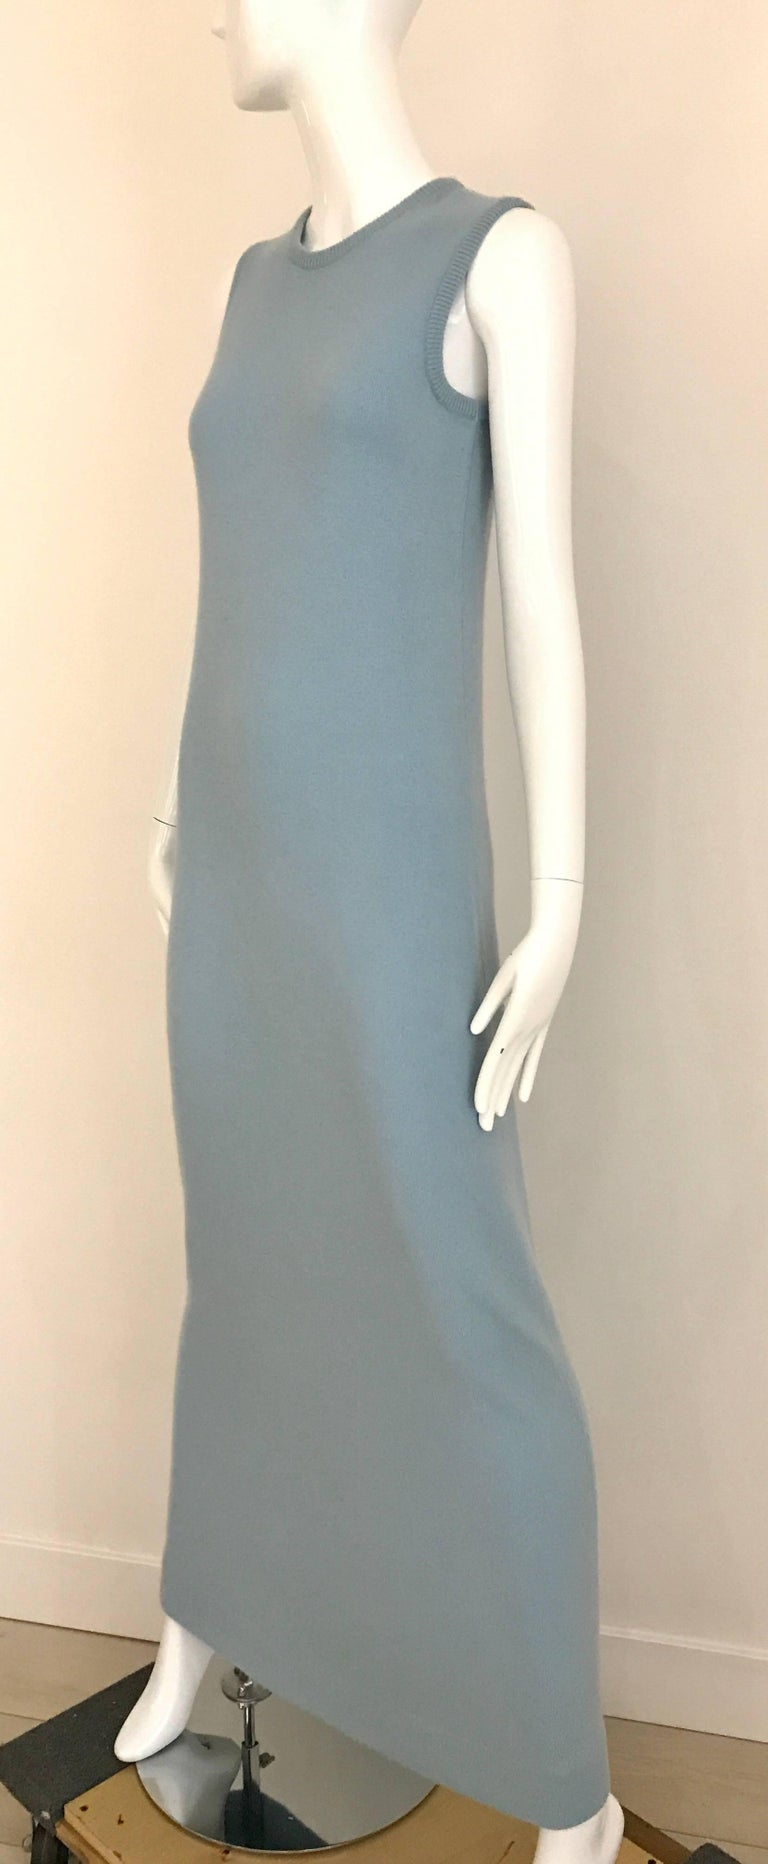 1970s HALSTON Baby Blue Sleeveless Cashmere Vintage Sweater 70s Dress For Sale 1